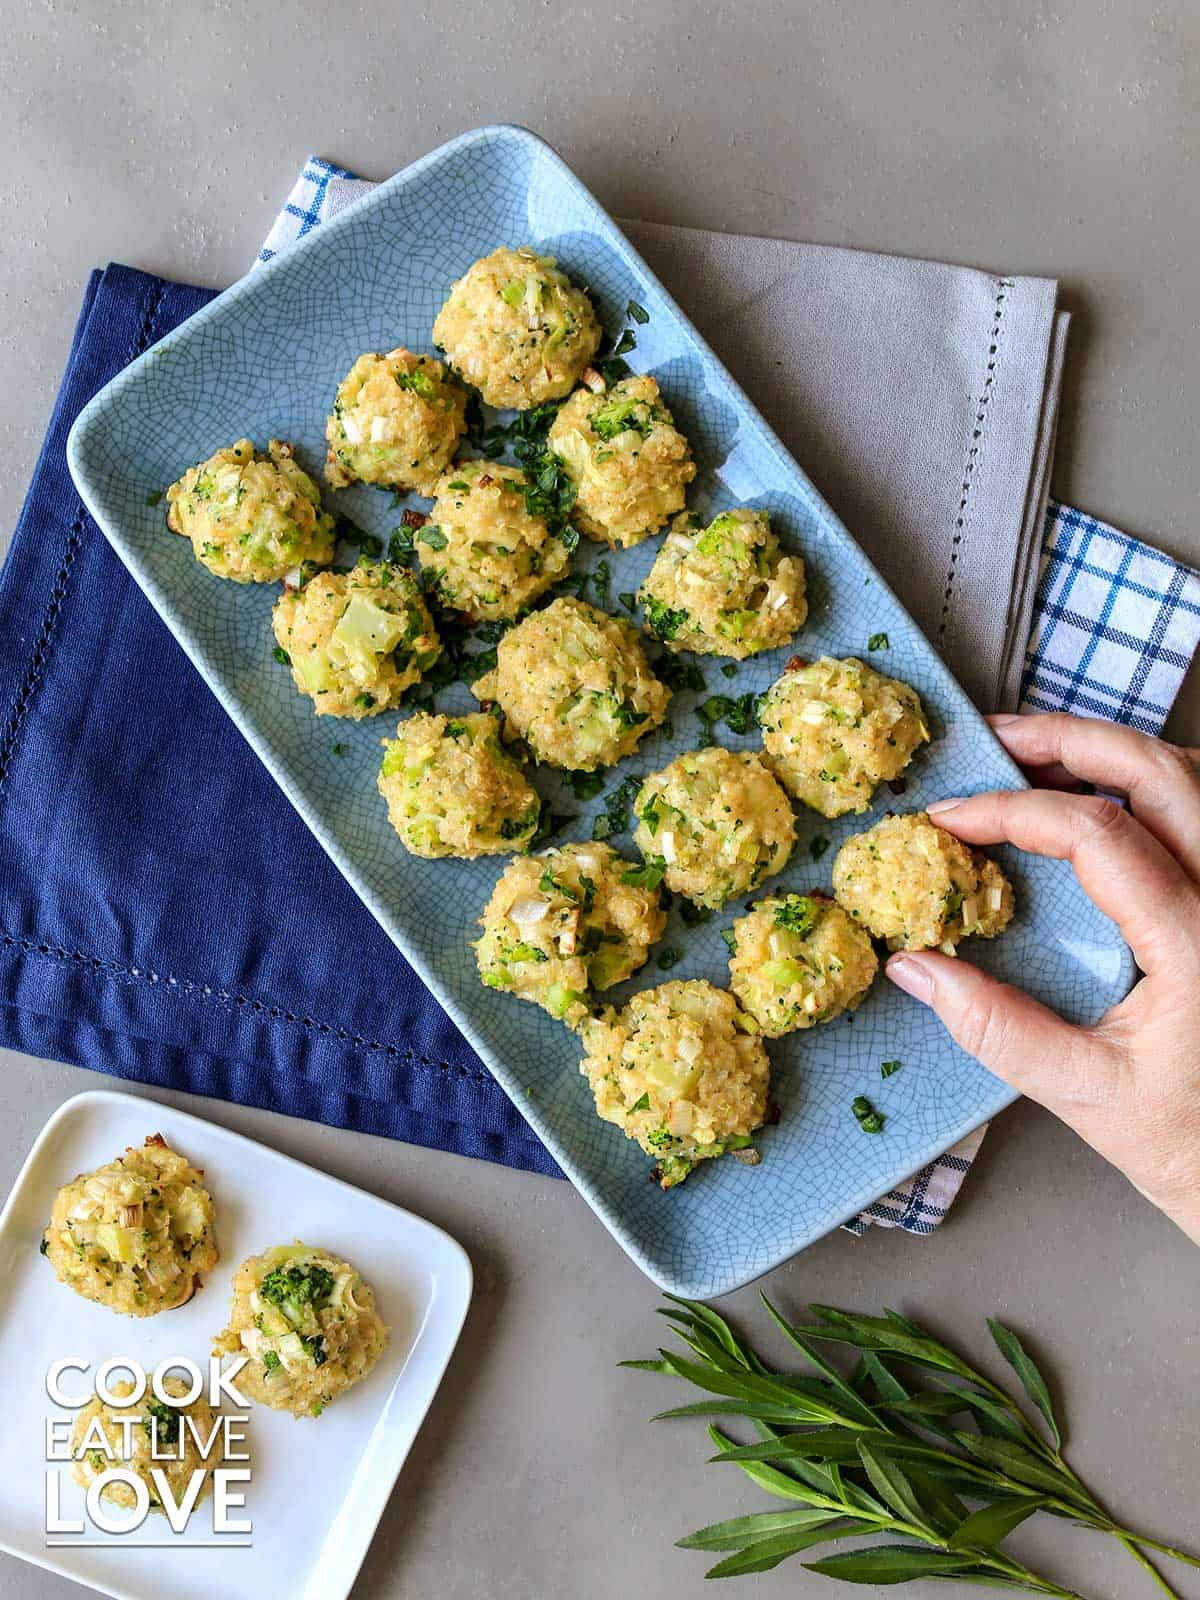 Broccoli quinoa bites on a platter with hand reaching to grab one